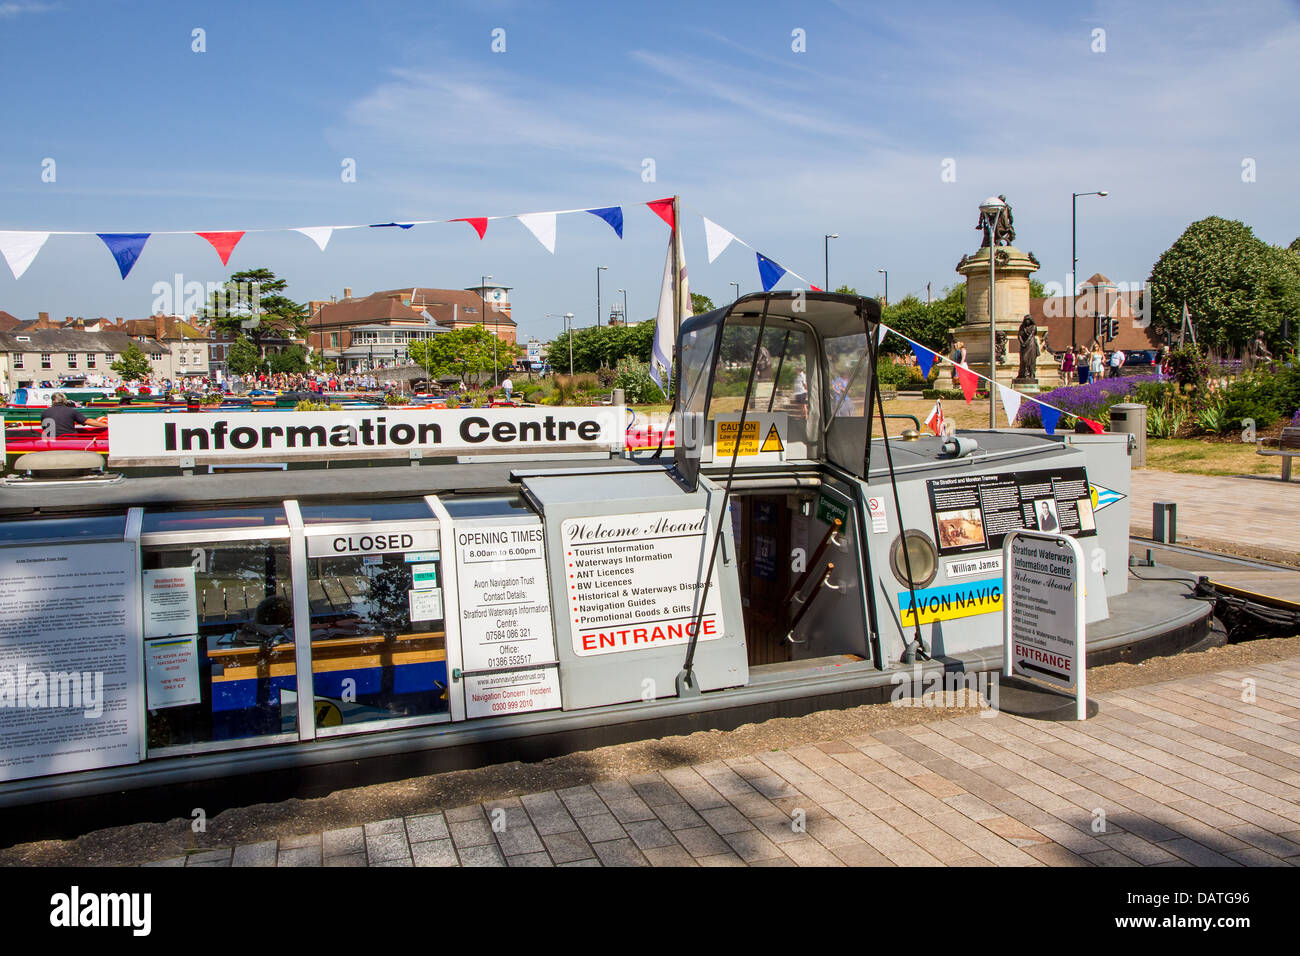 Stratford Waterways Information Centre in Bancroft Basin, Stratford Upon Avon - Stock Image